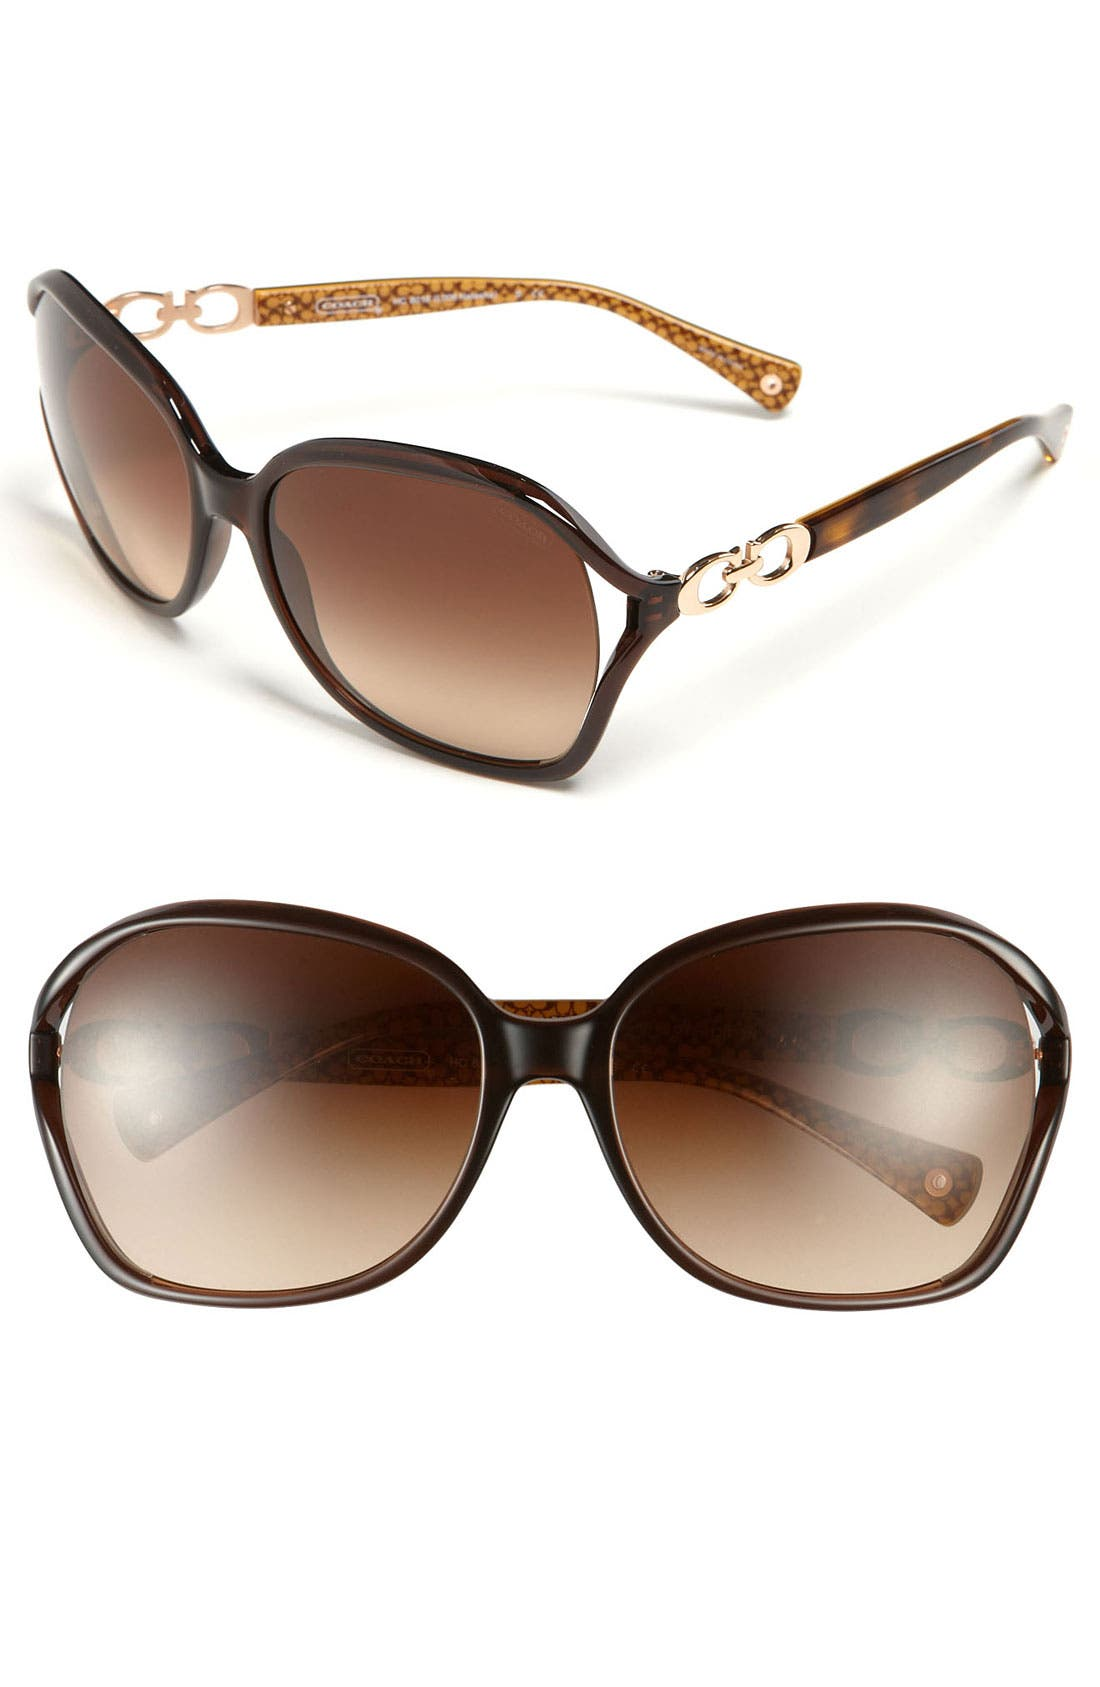 Main Image - COACH Oversized Sunglasses